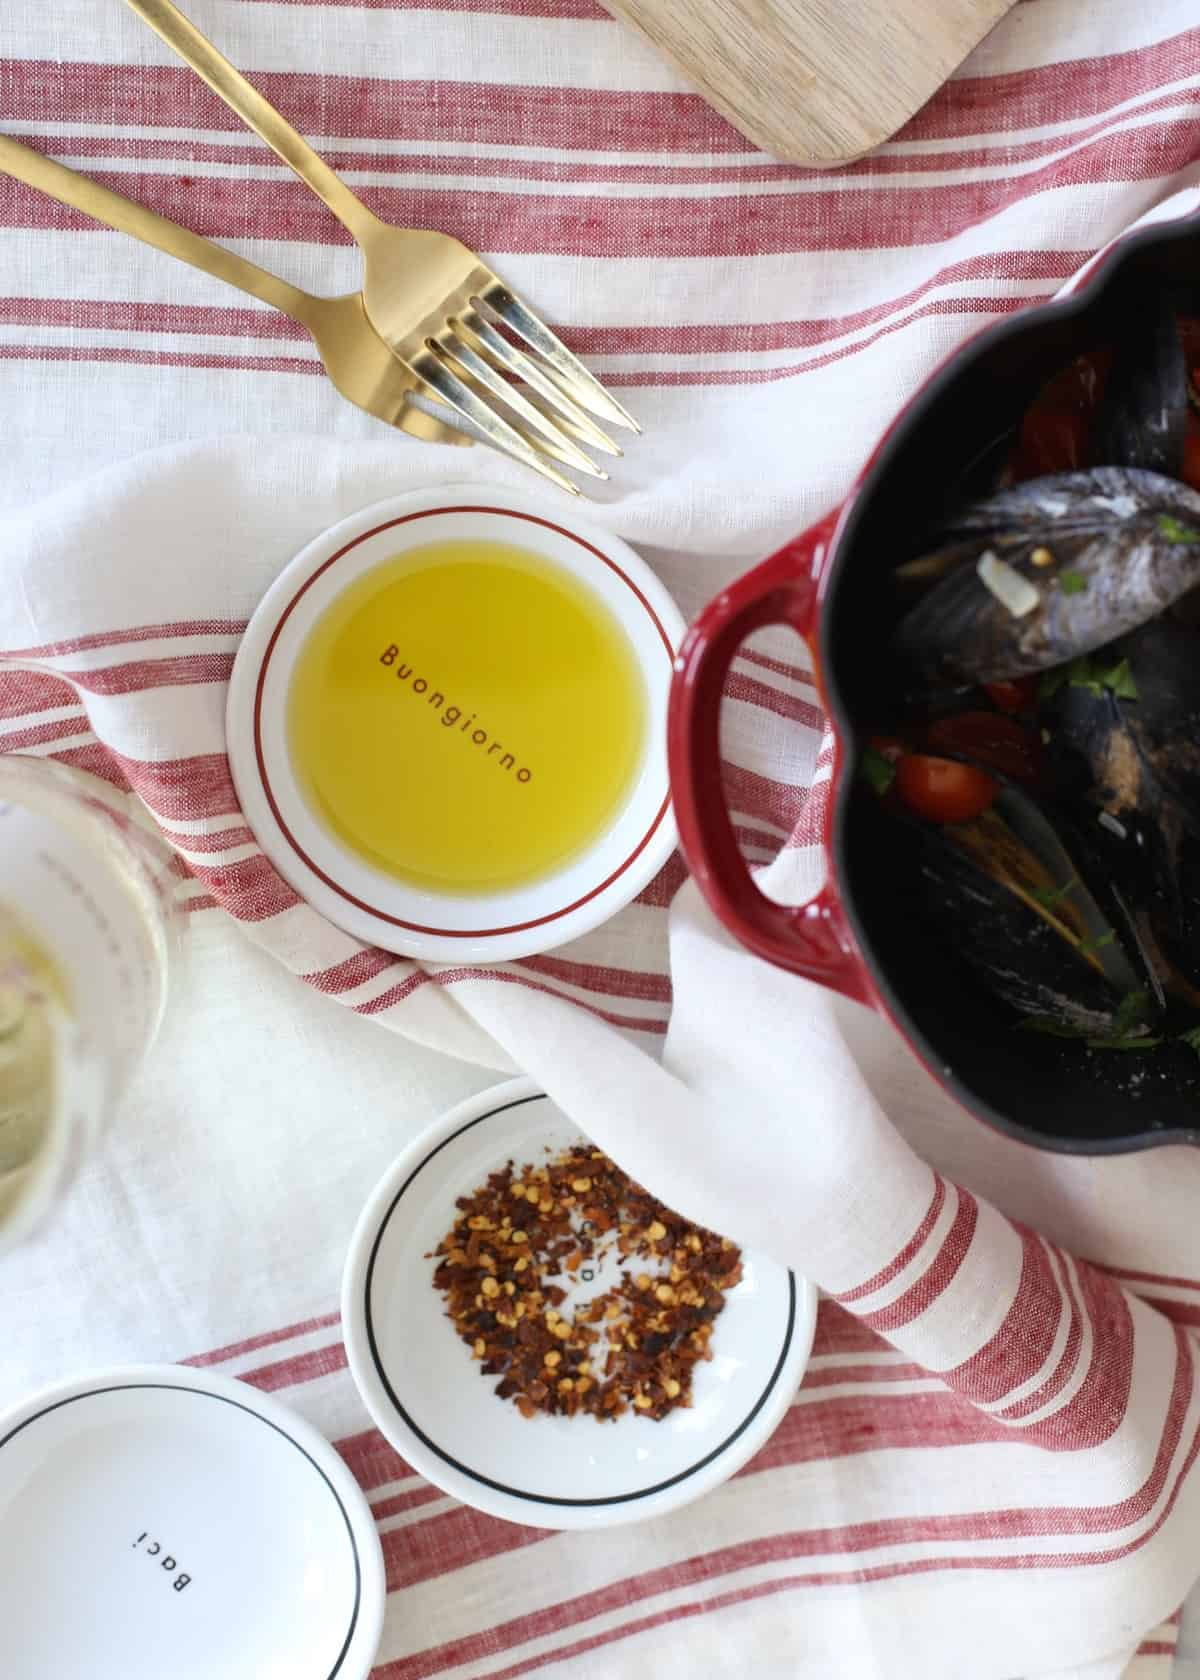 mussels with garlic and olive oil